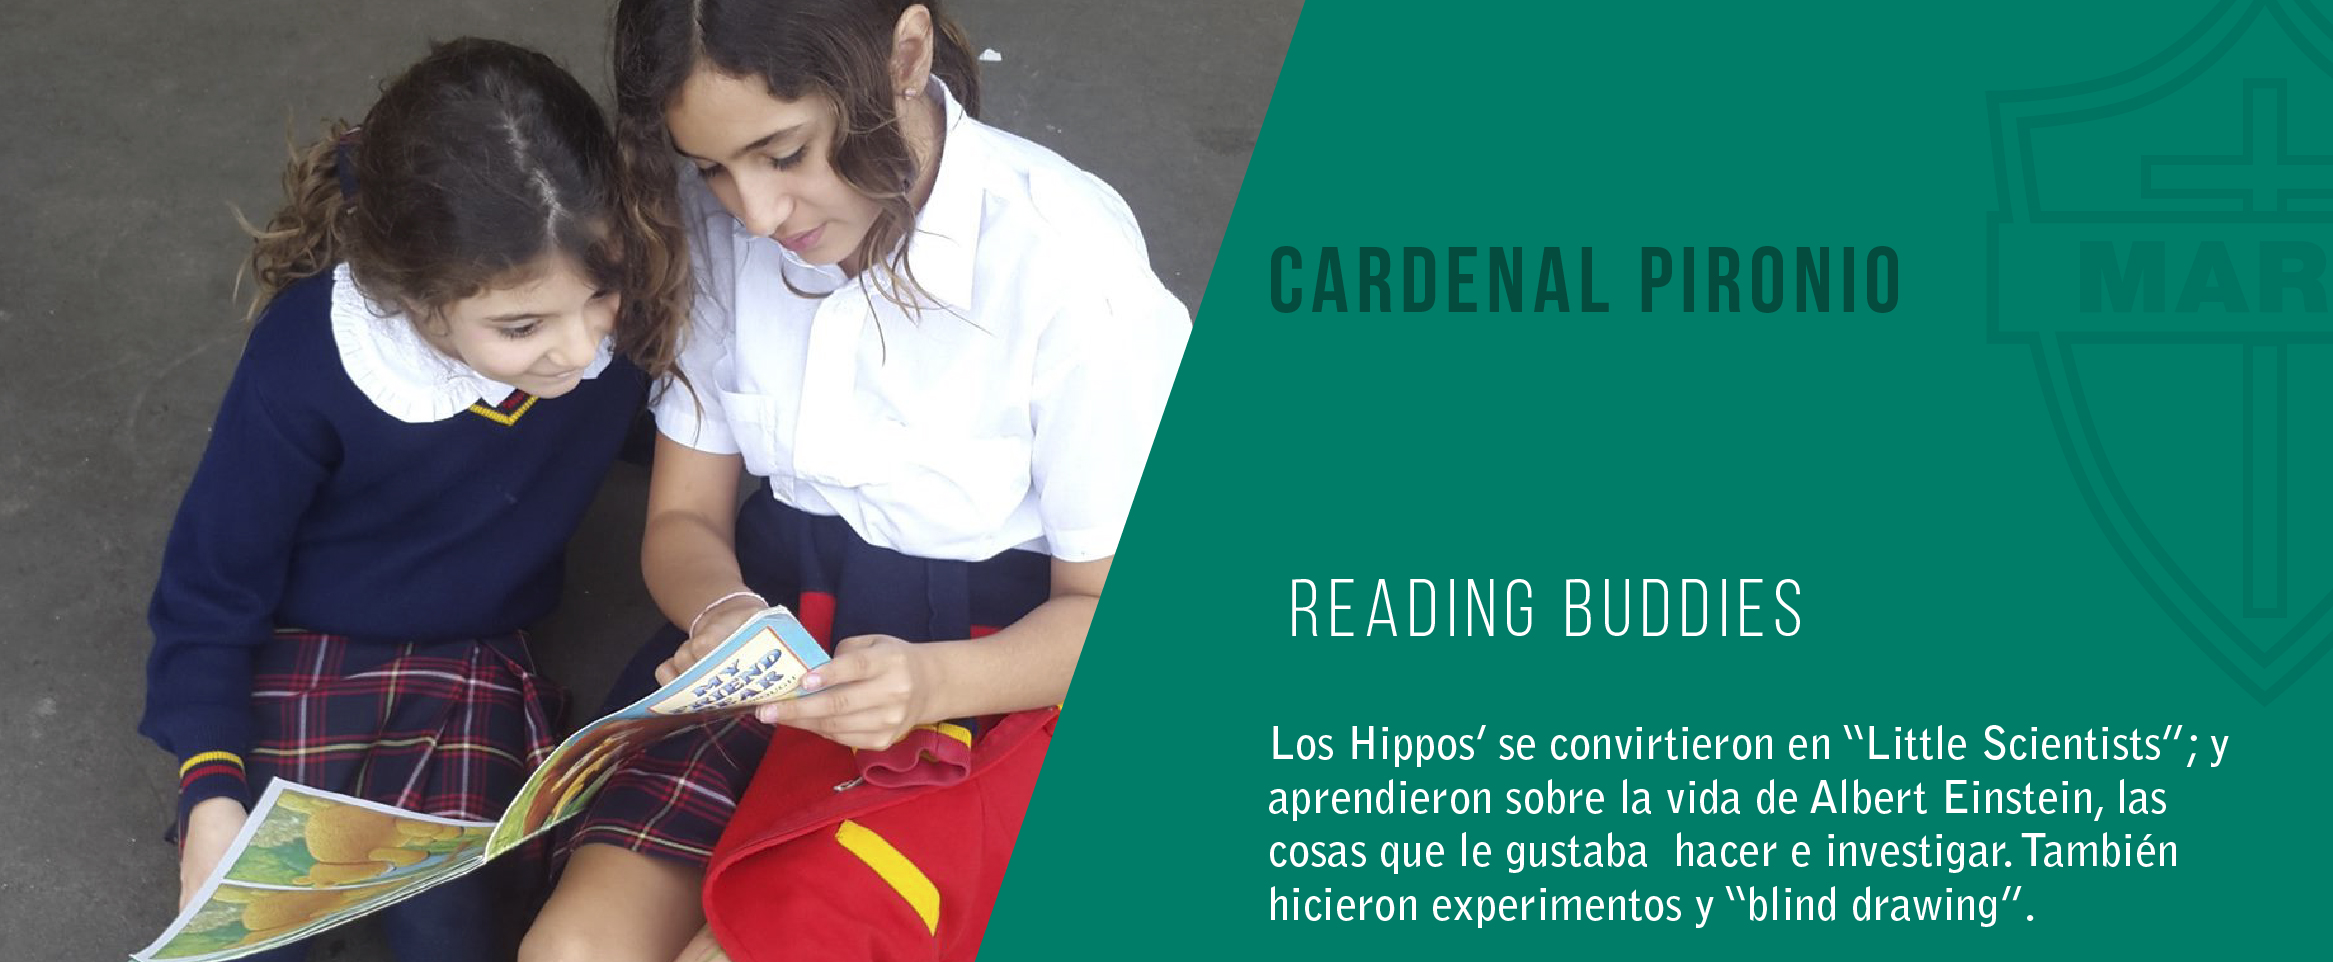 noticia reading buddies en el colegio plácido marín